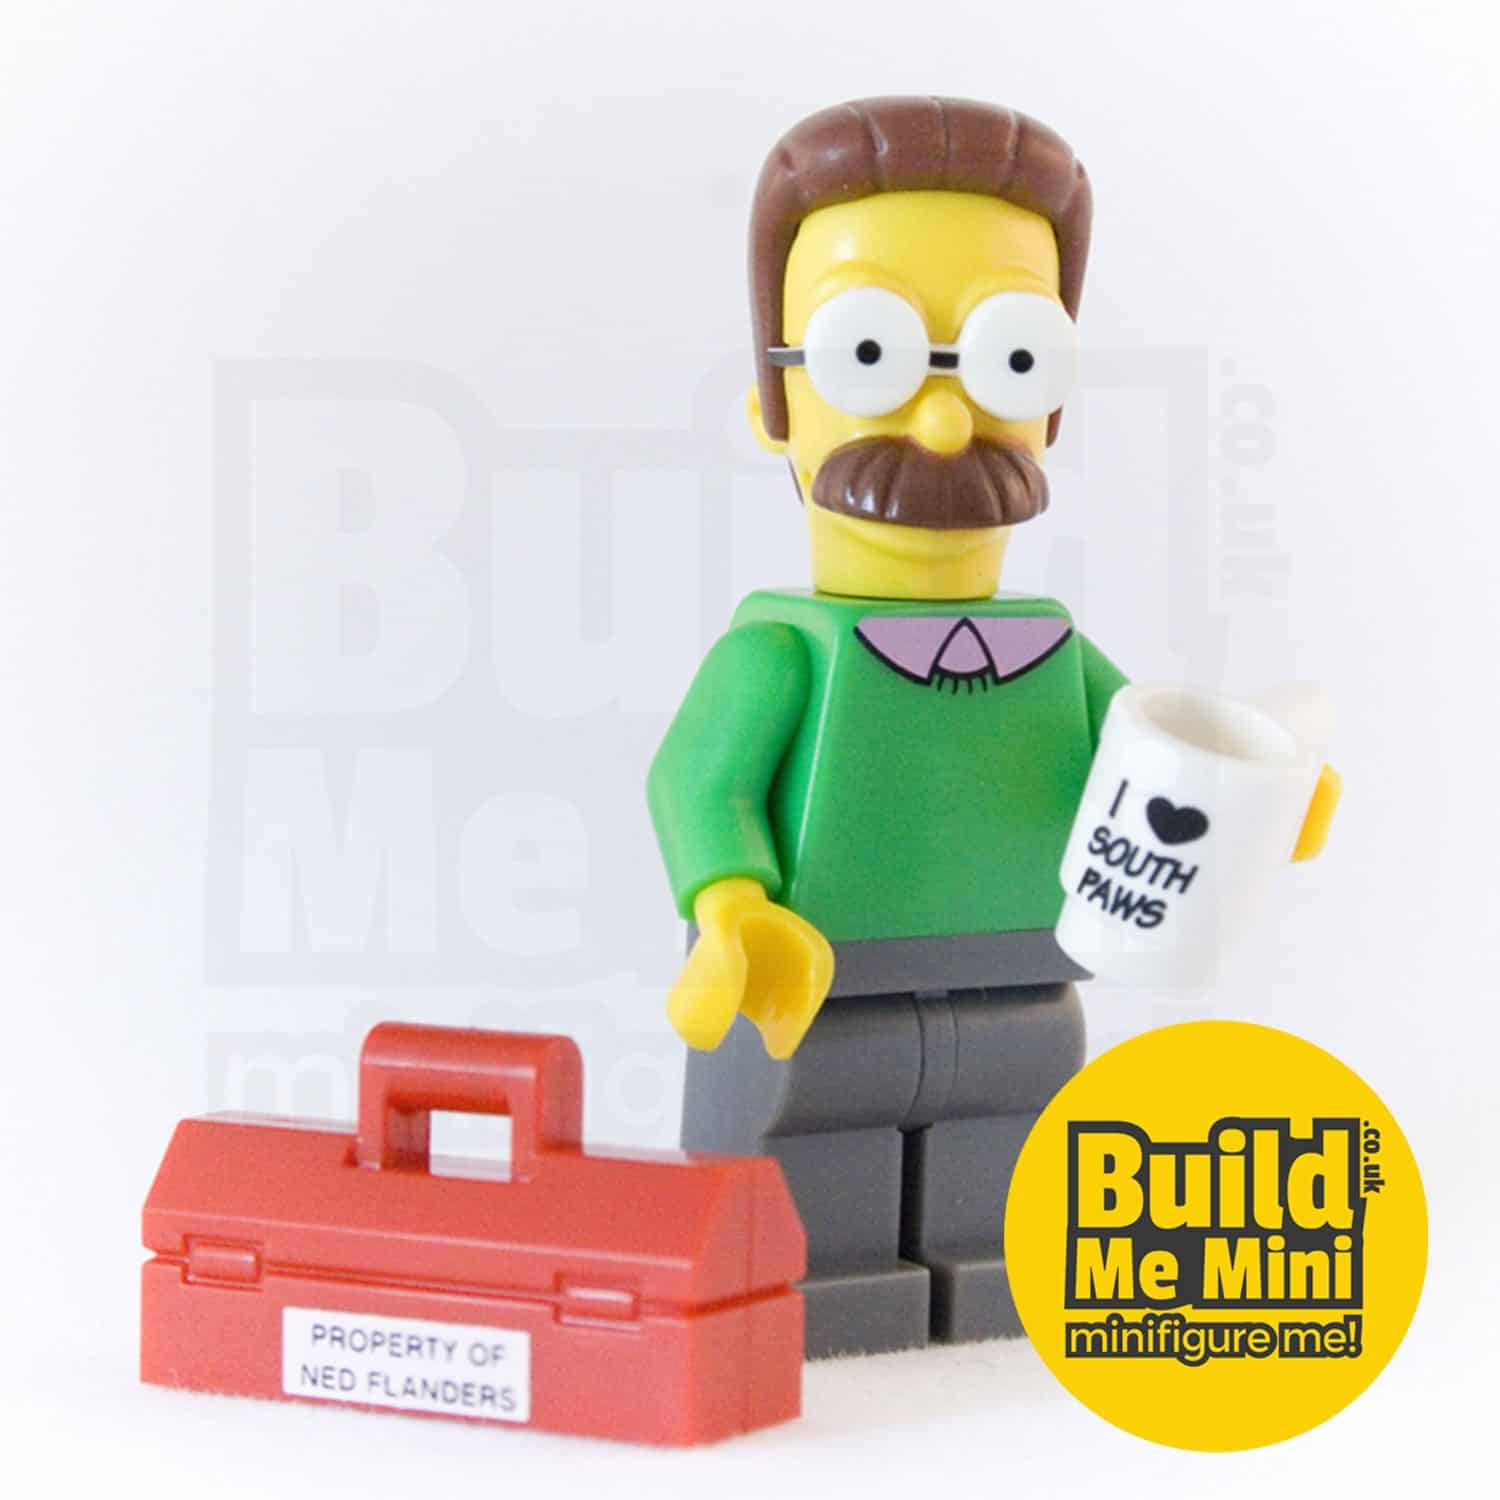 LEGO Simpsons Ned Flanders Minifigure